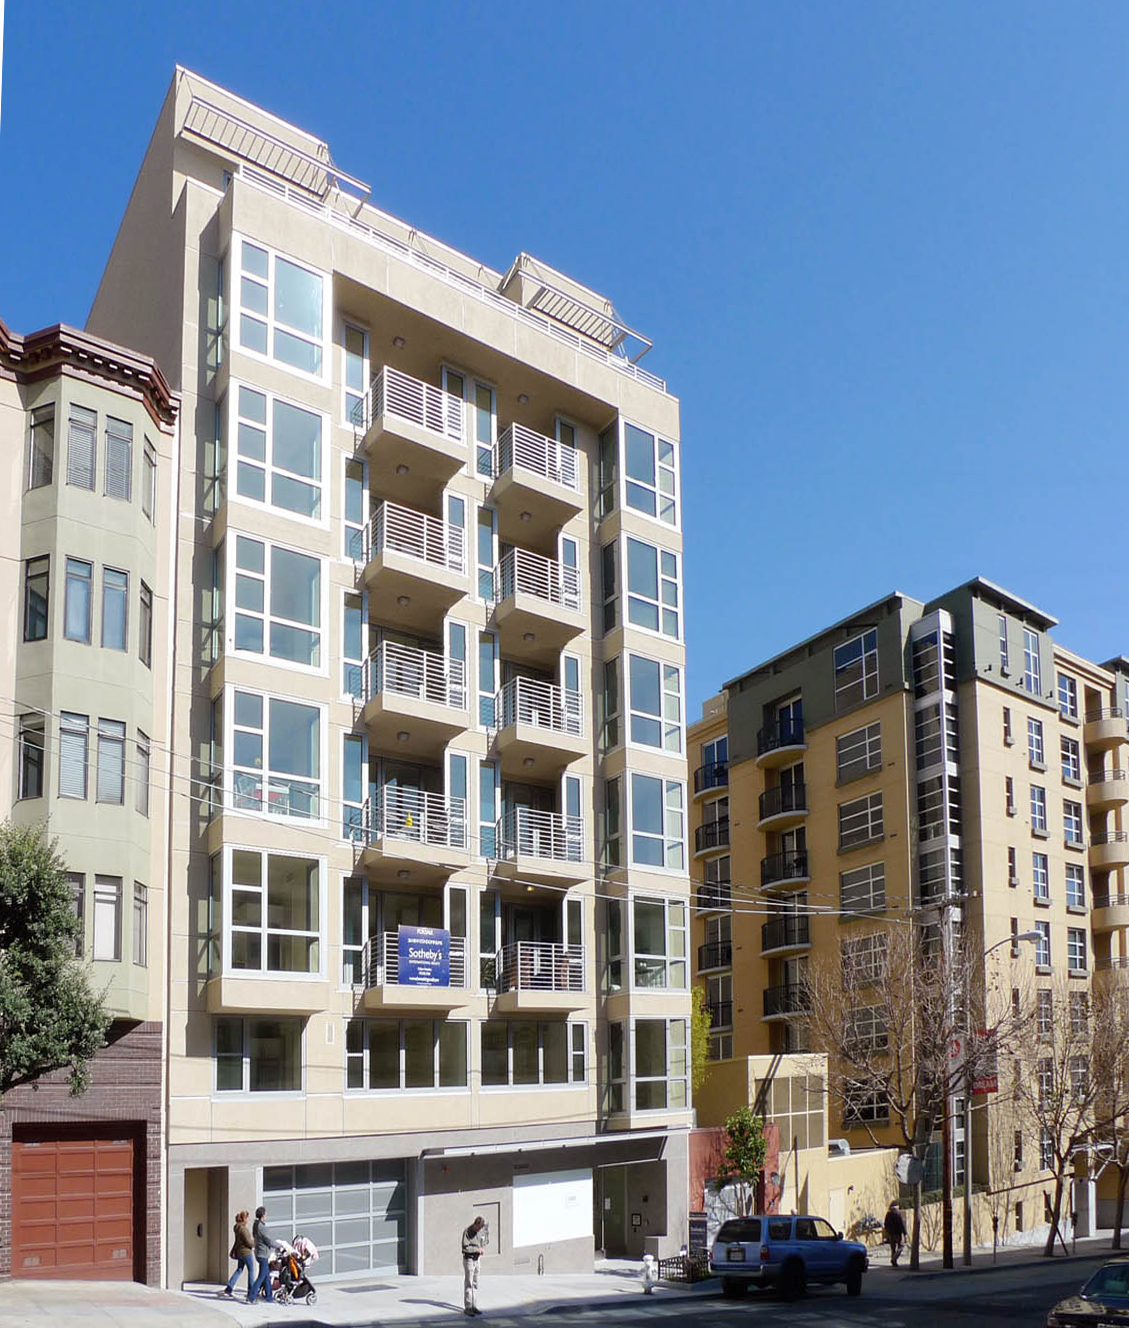 Apartments In San Fran: New Apartment Building In San Francisco